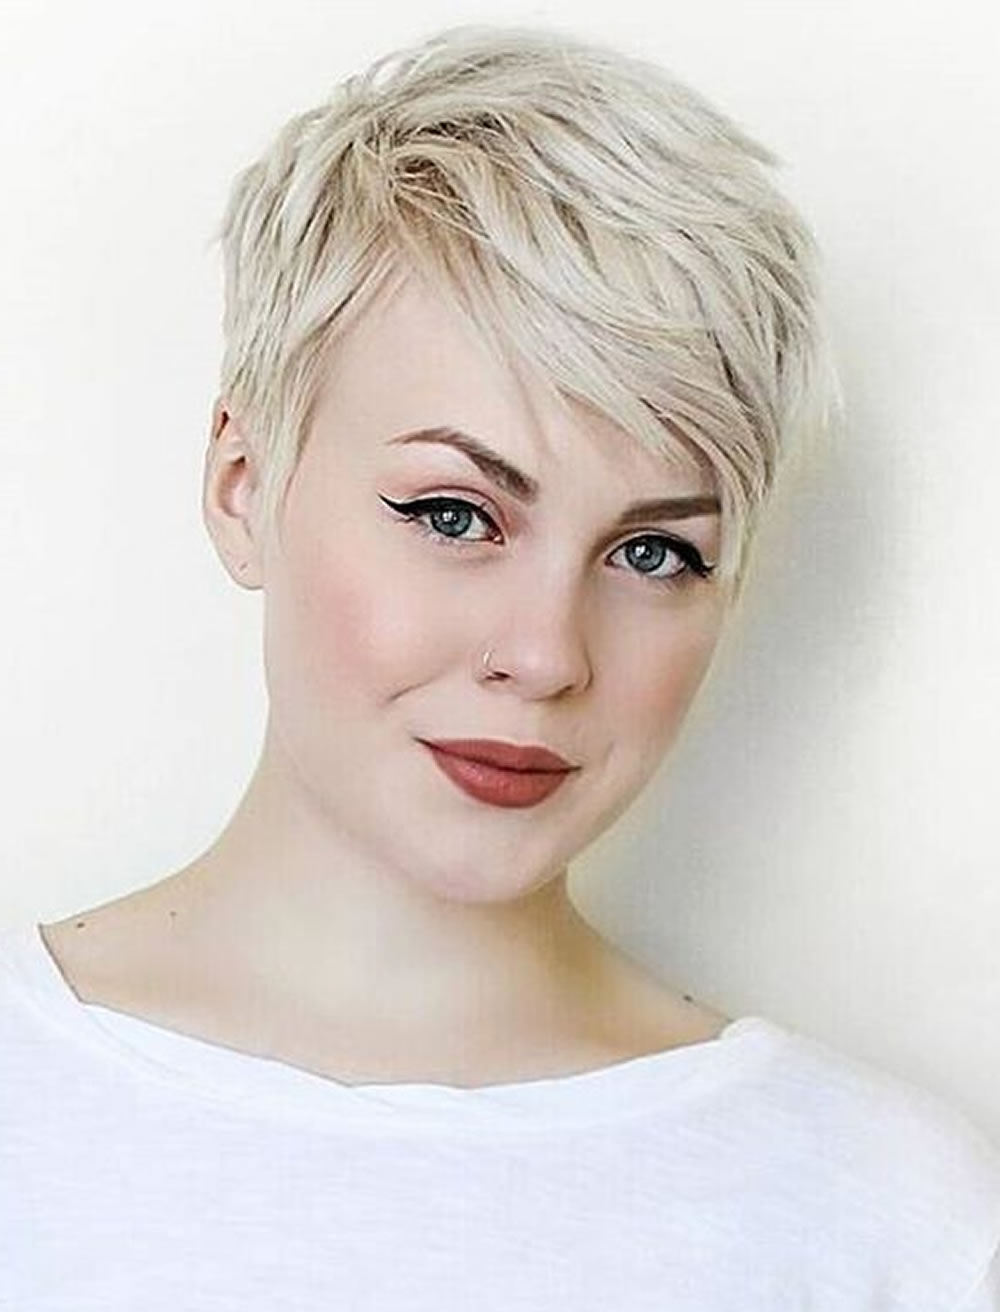 Messy Short Pixie Hairstyles For Blonde Women – Hairstyles With Regard To Messy Pixie Hairstyles For Short Hair (View 11 of 20)